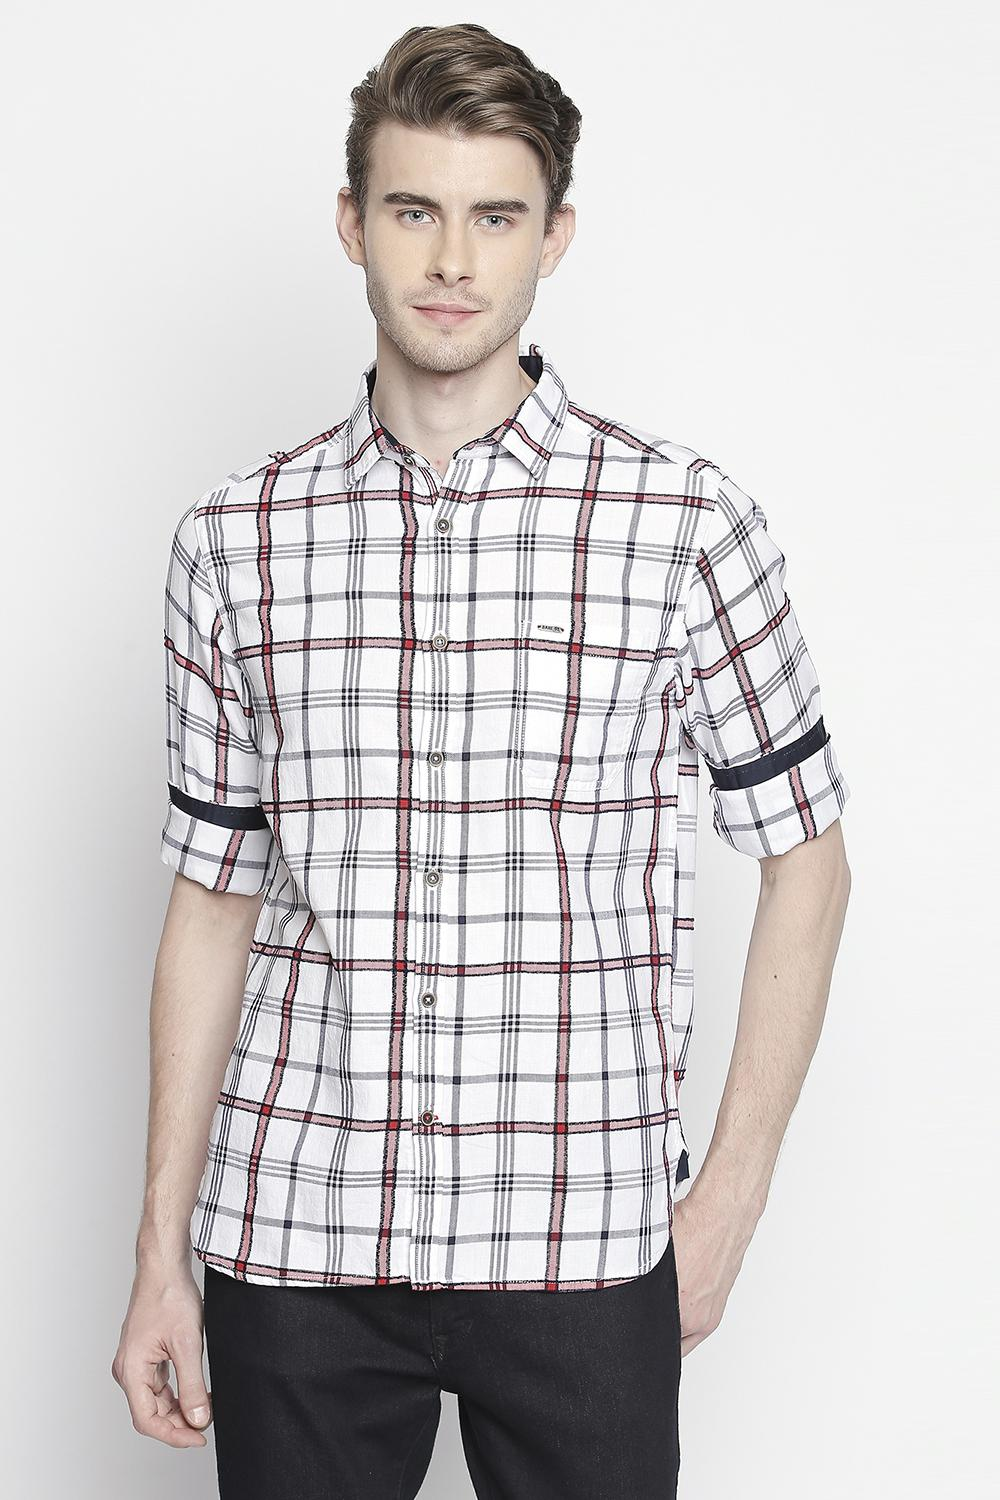 cd48d3c959b1 Buy Mens Casual and Formal Shirts Online with Affordable Price in ...